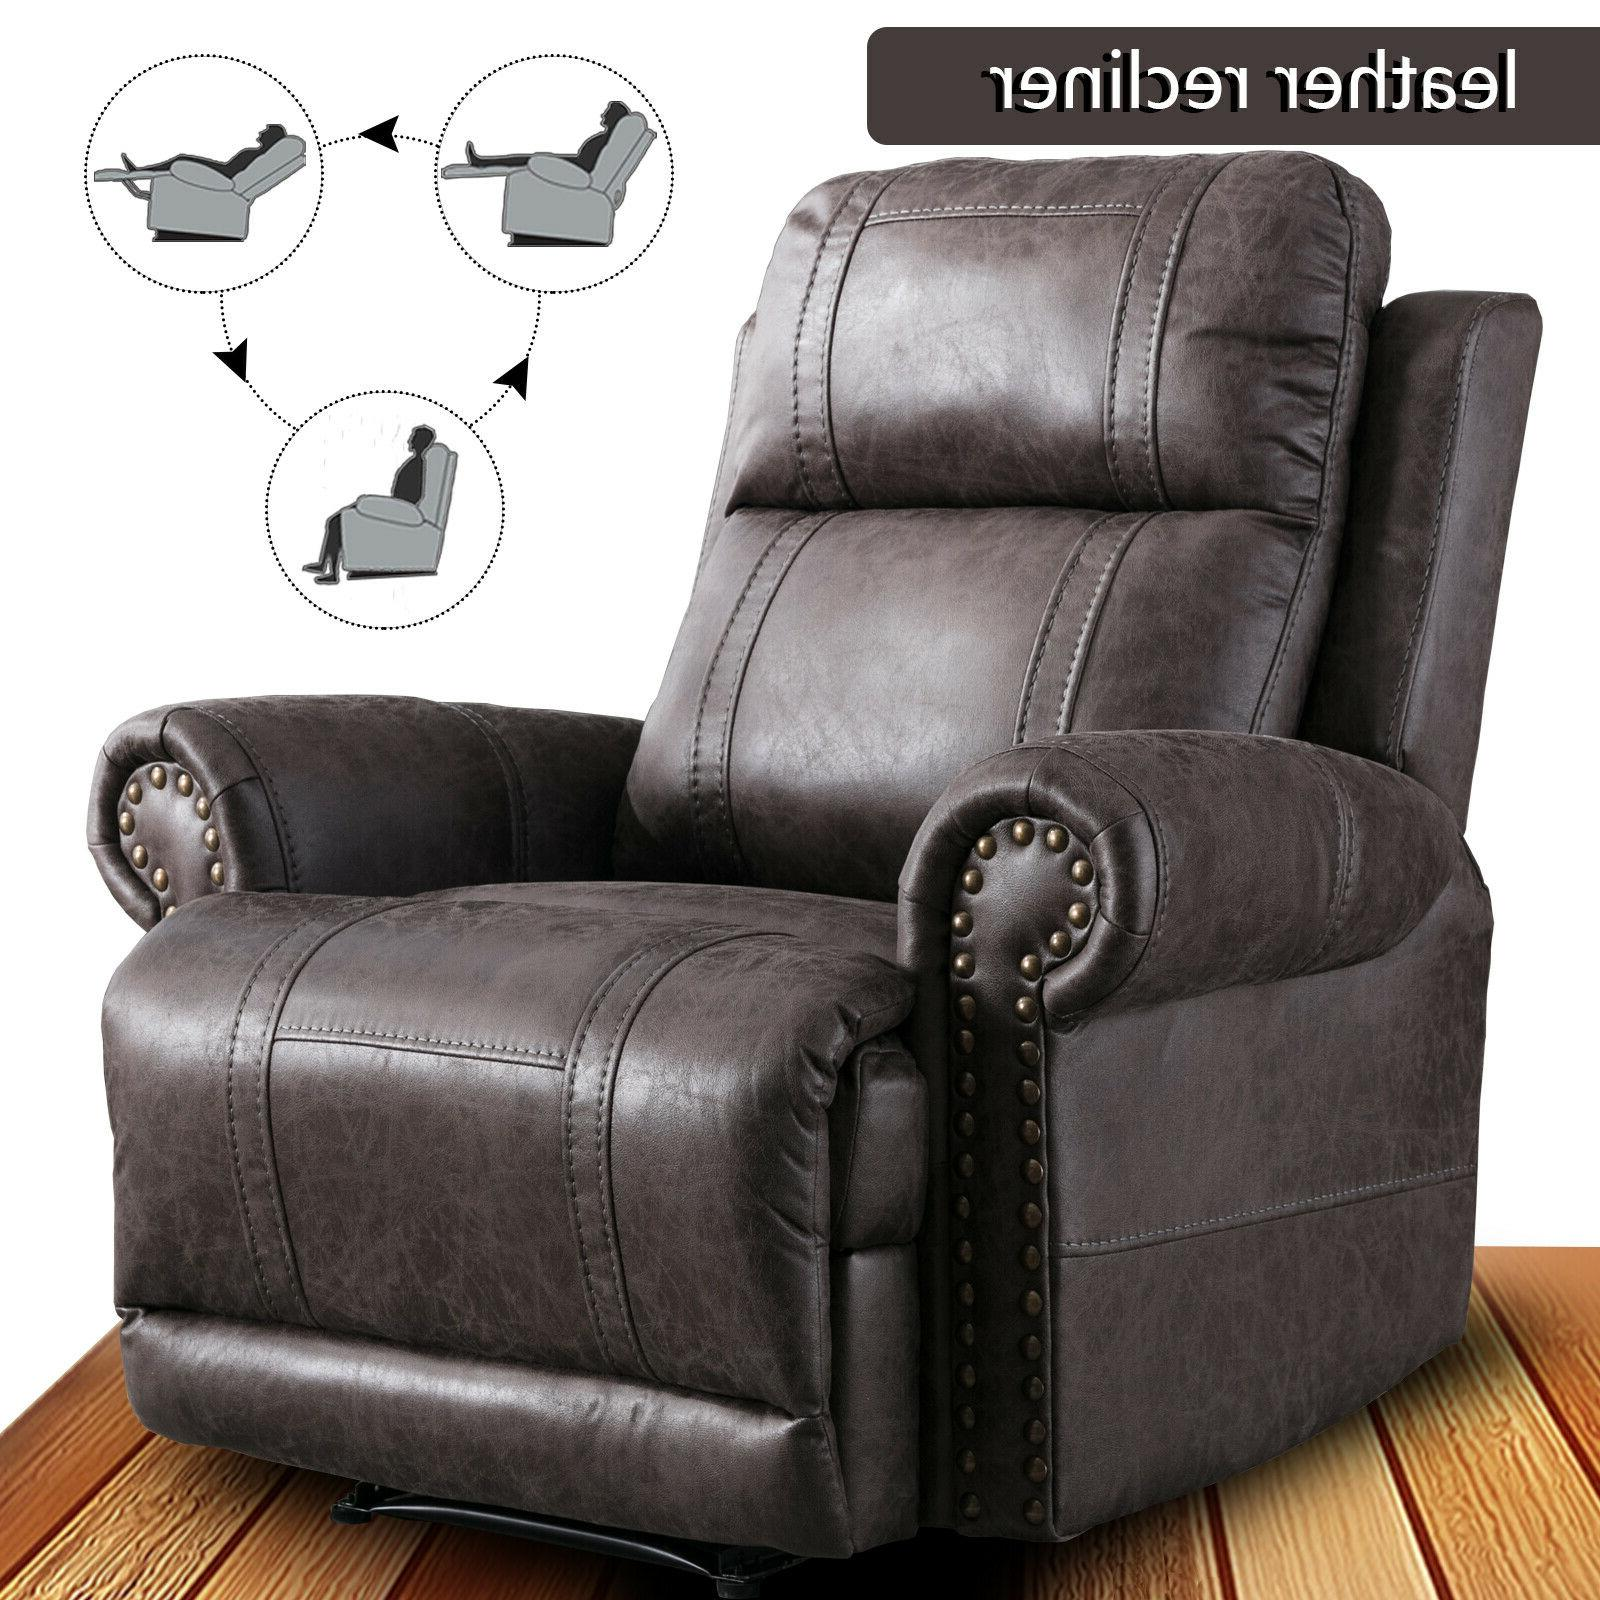 manual leather recliner chair overstuffed back sofa